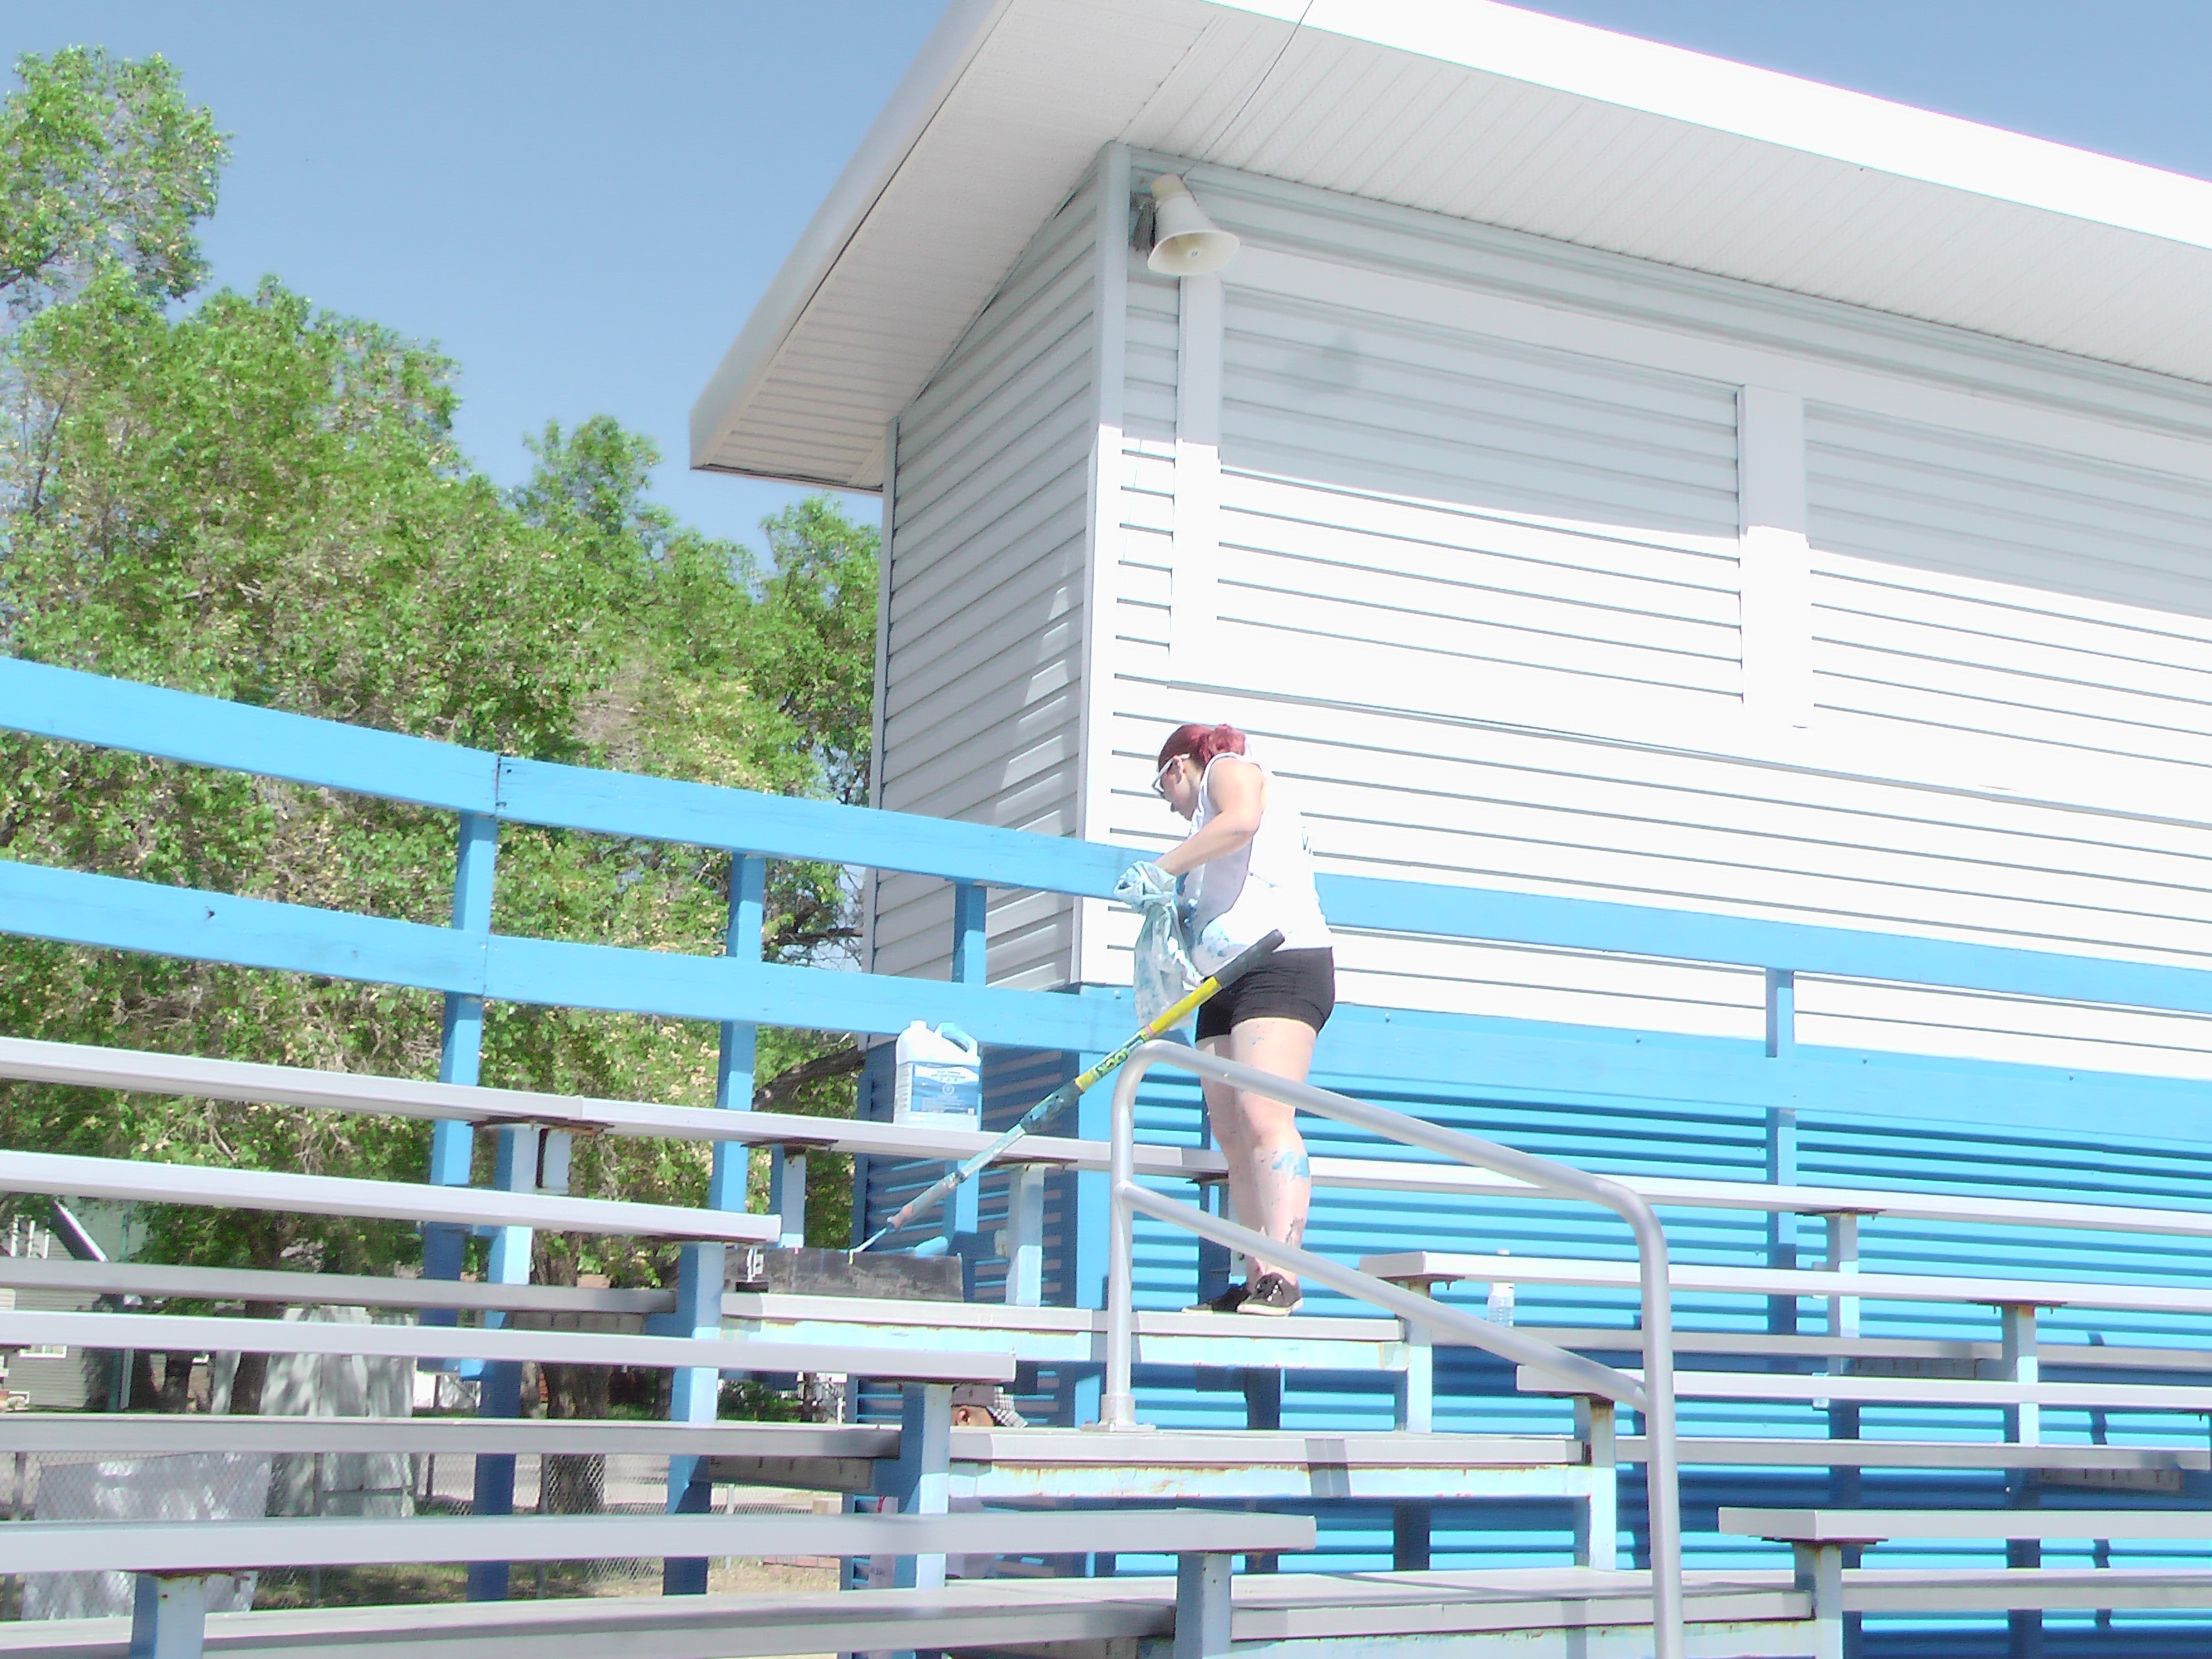 A BIG Thank You to Sherwin Williams and Staff for Supplying Volunteers and Paint for the Park! Video and Pics! - Image 6